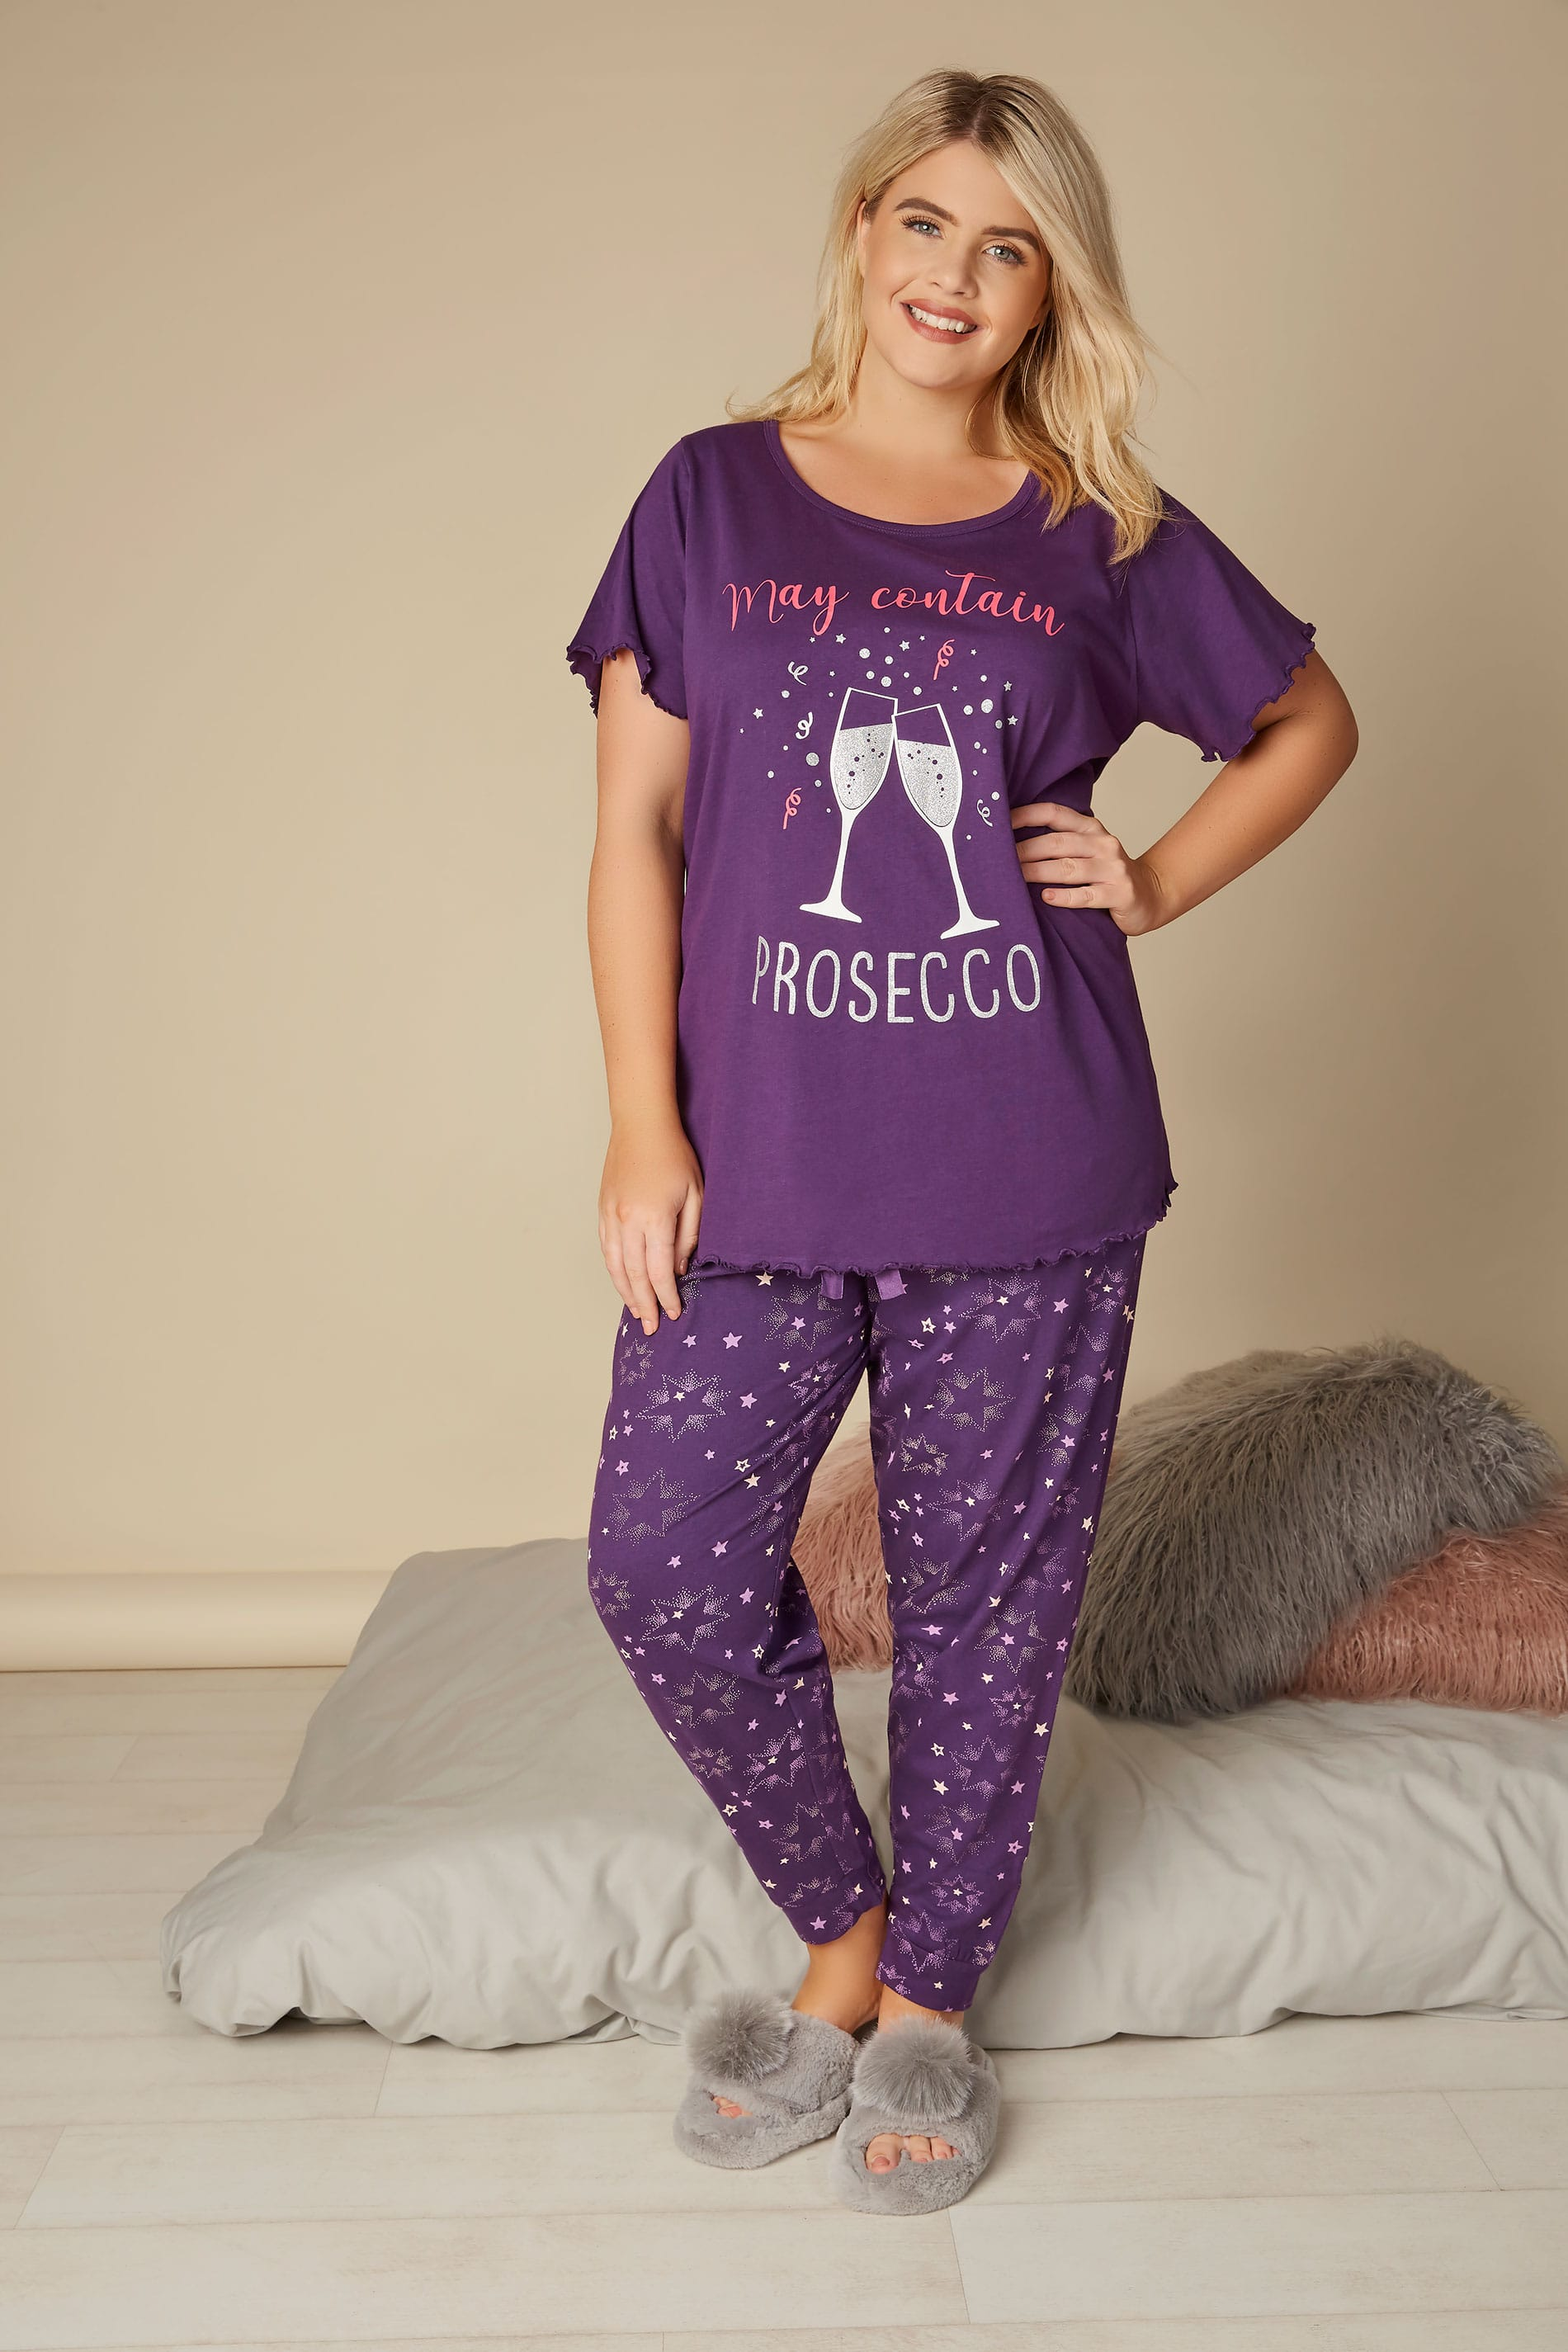 purple star print cuffed pyjama bottoms plus size 16 to 36. Black Bedroom Furniture Sets. Home Design Ideas